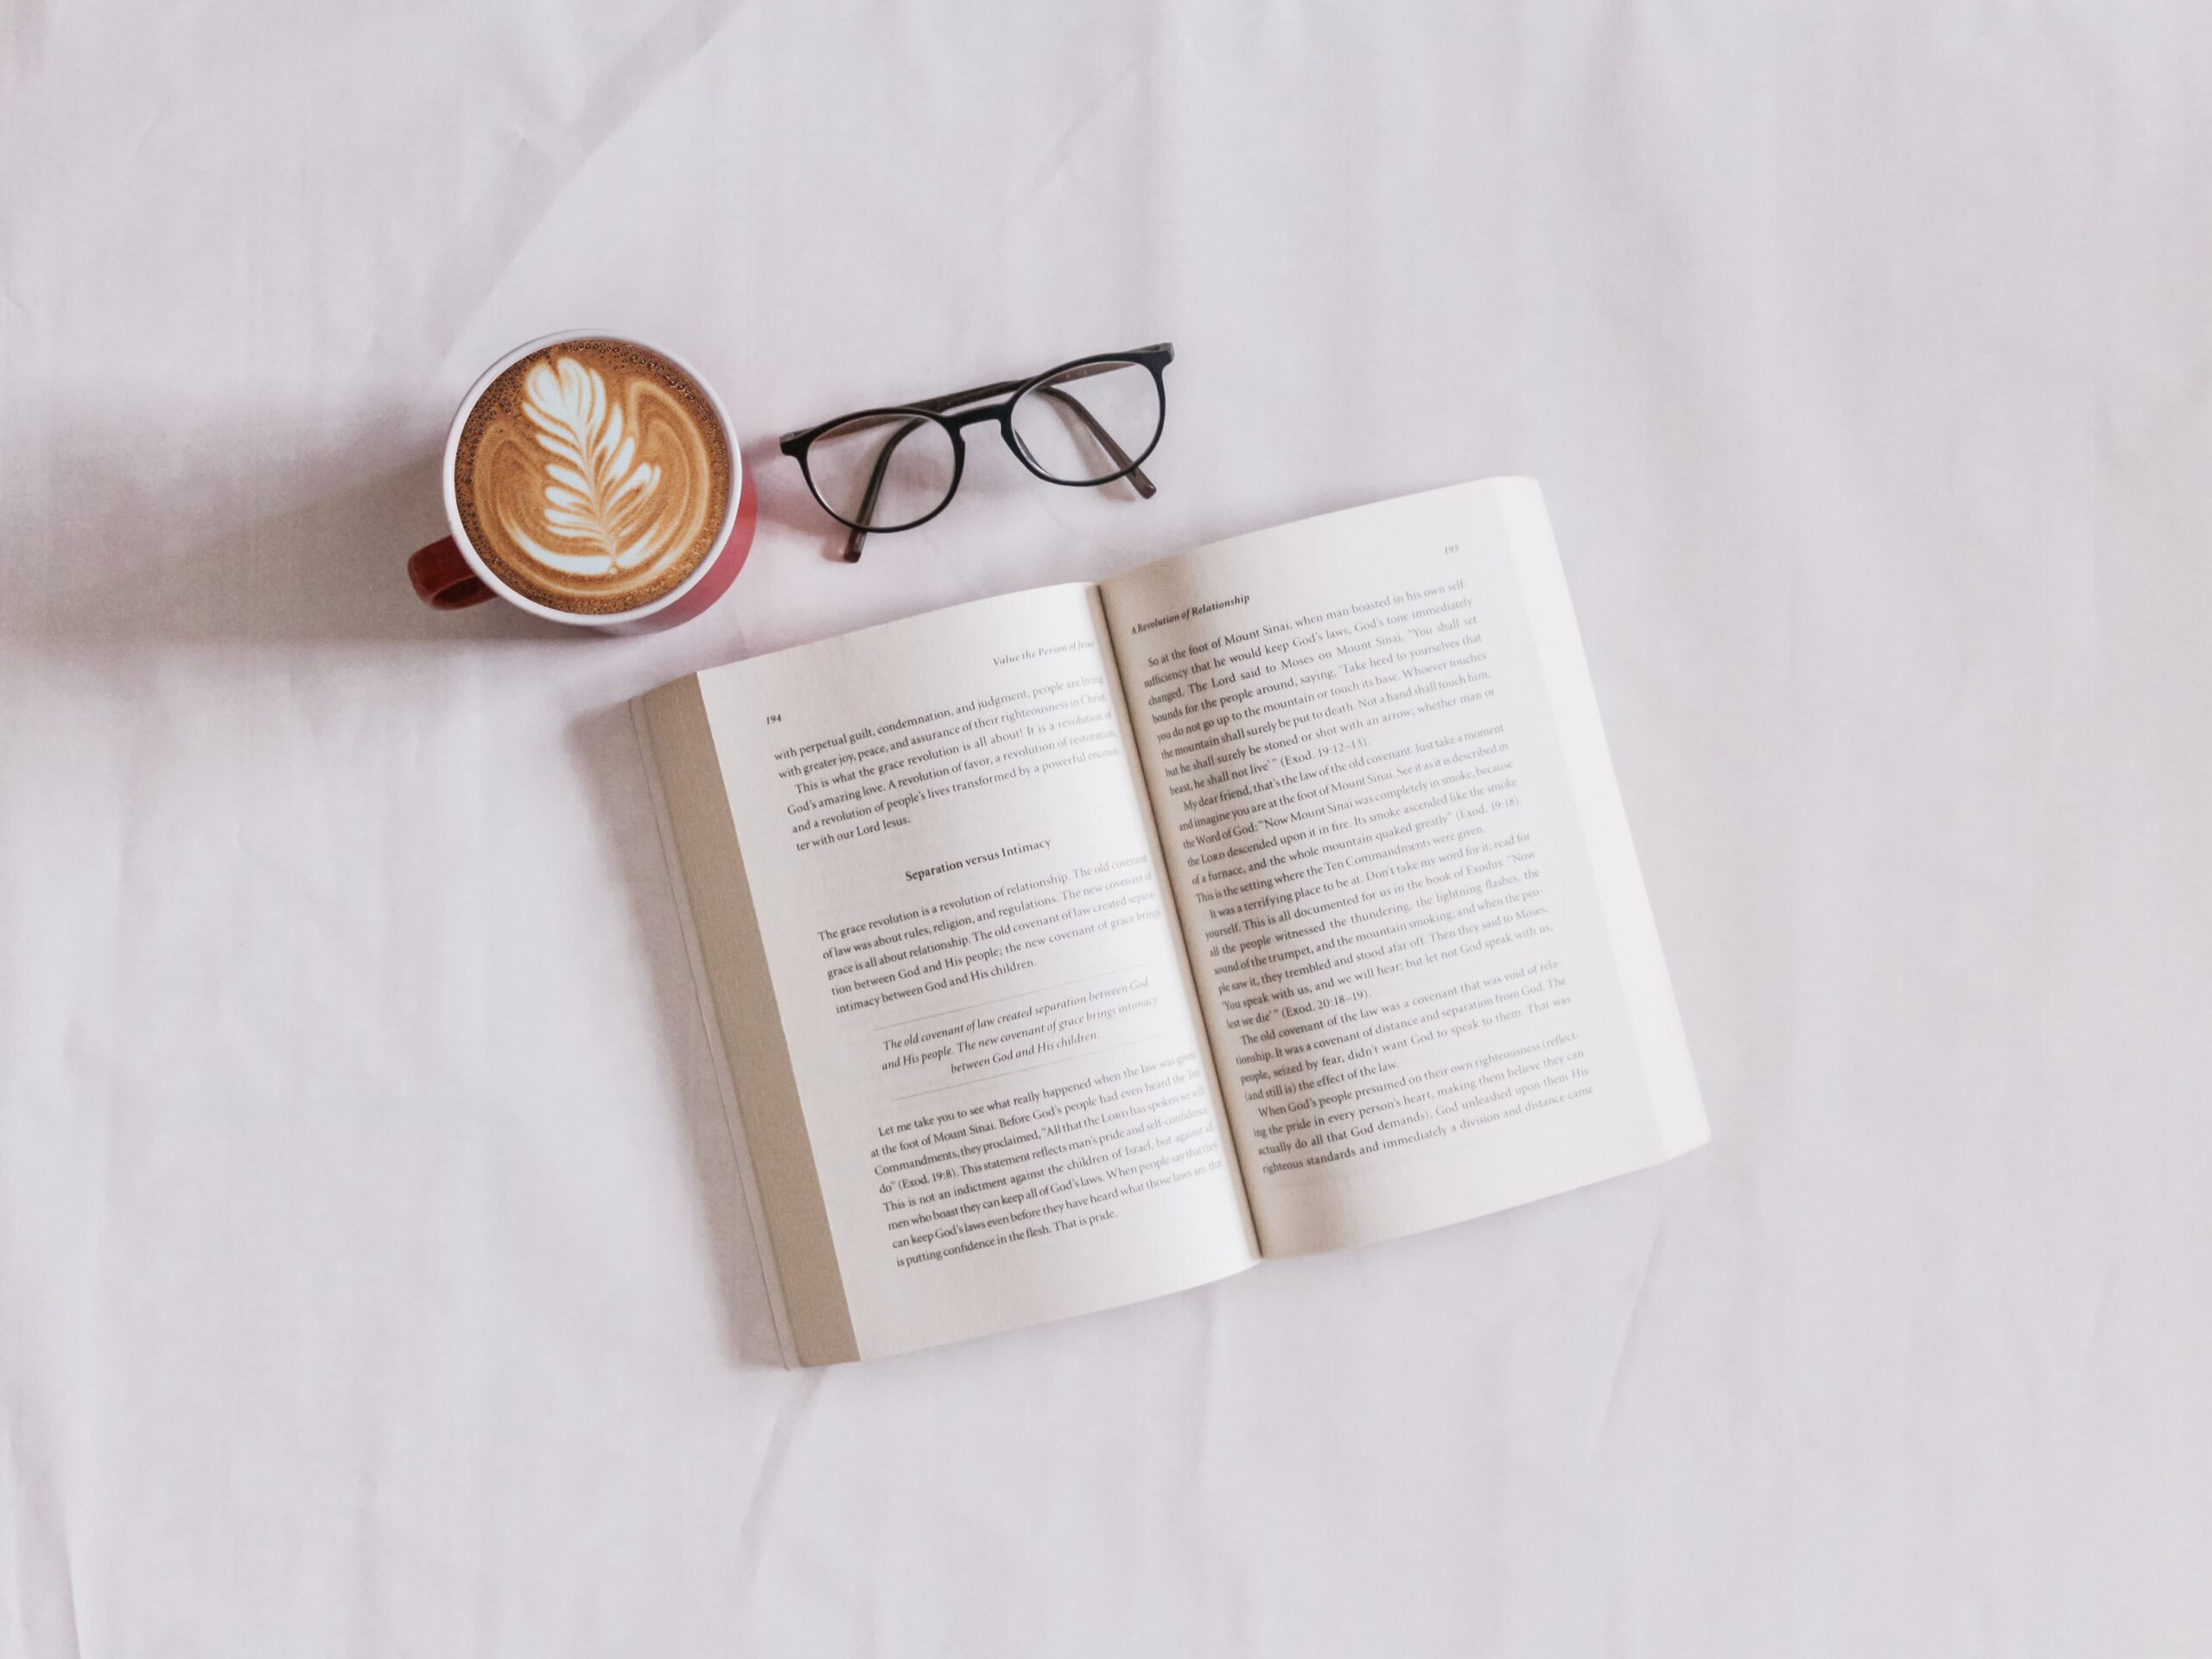 What Are You Reading: The Value Of A Book